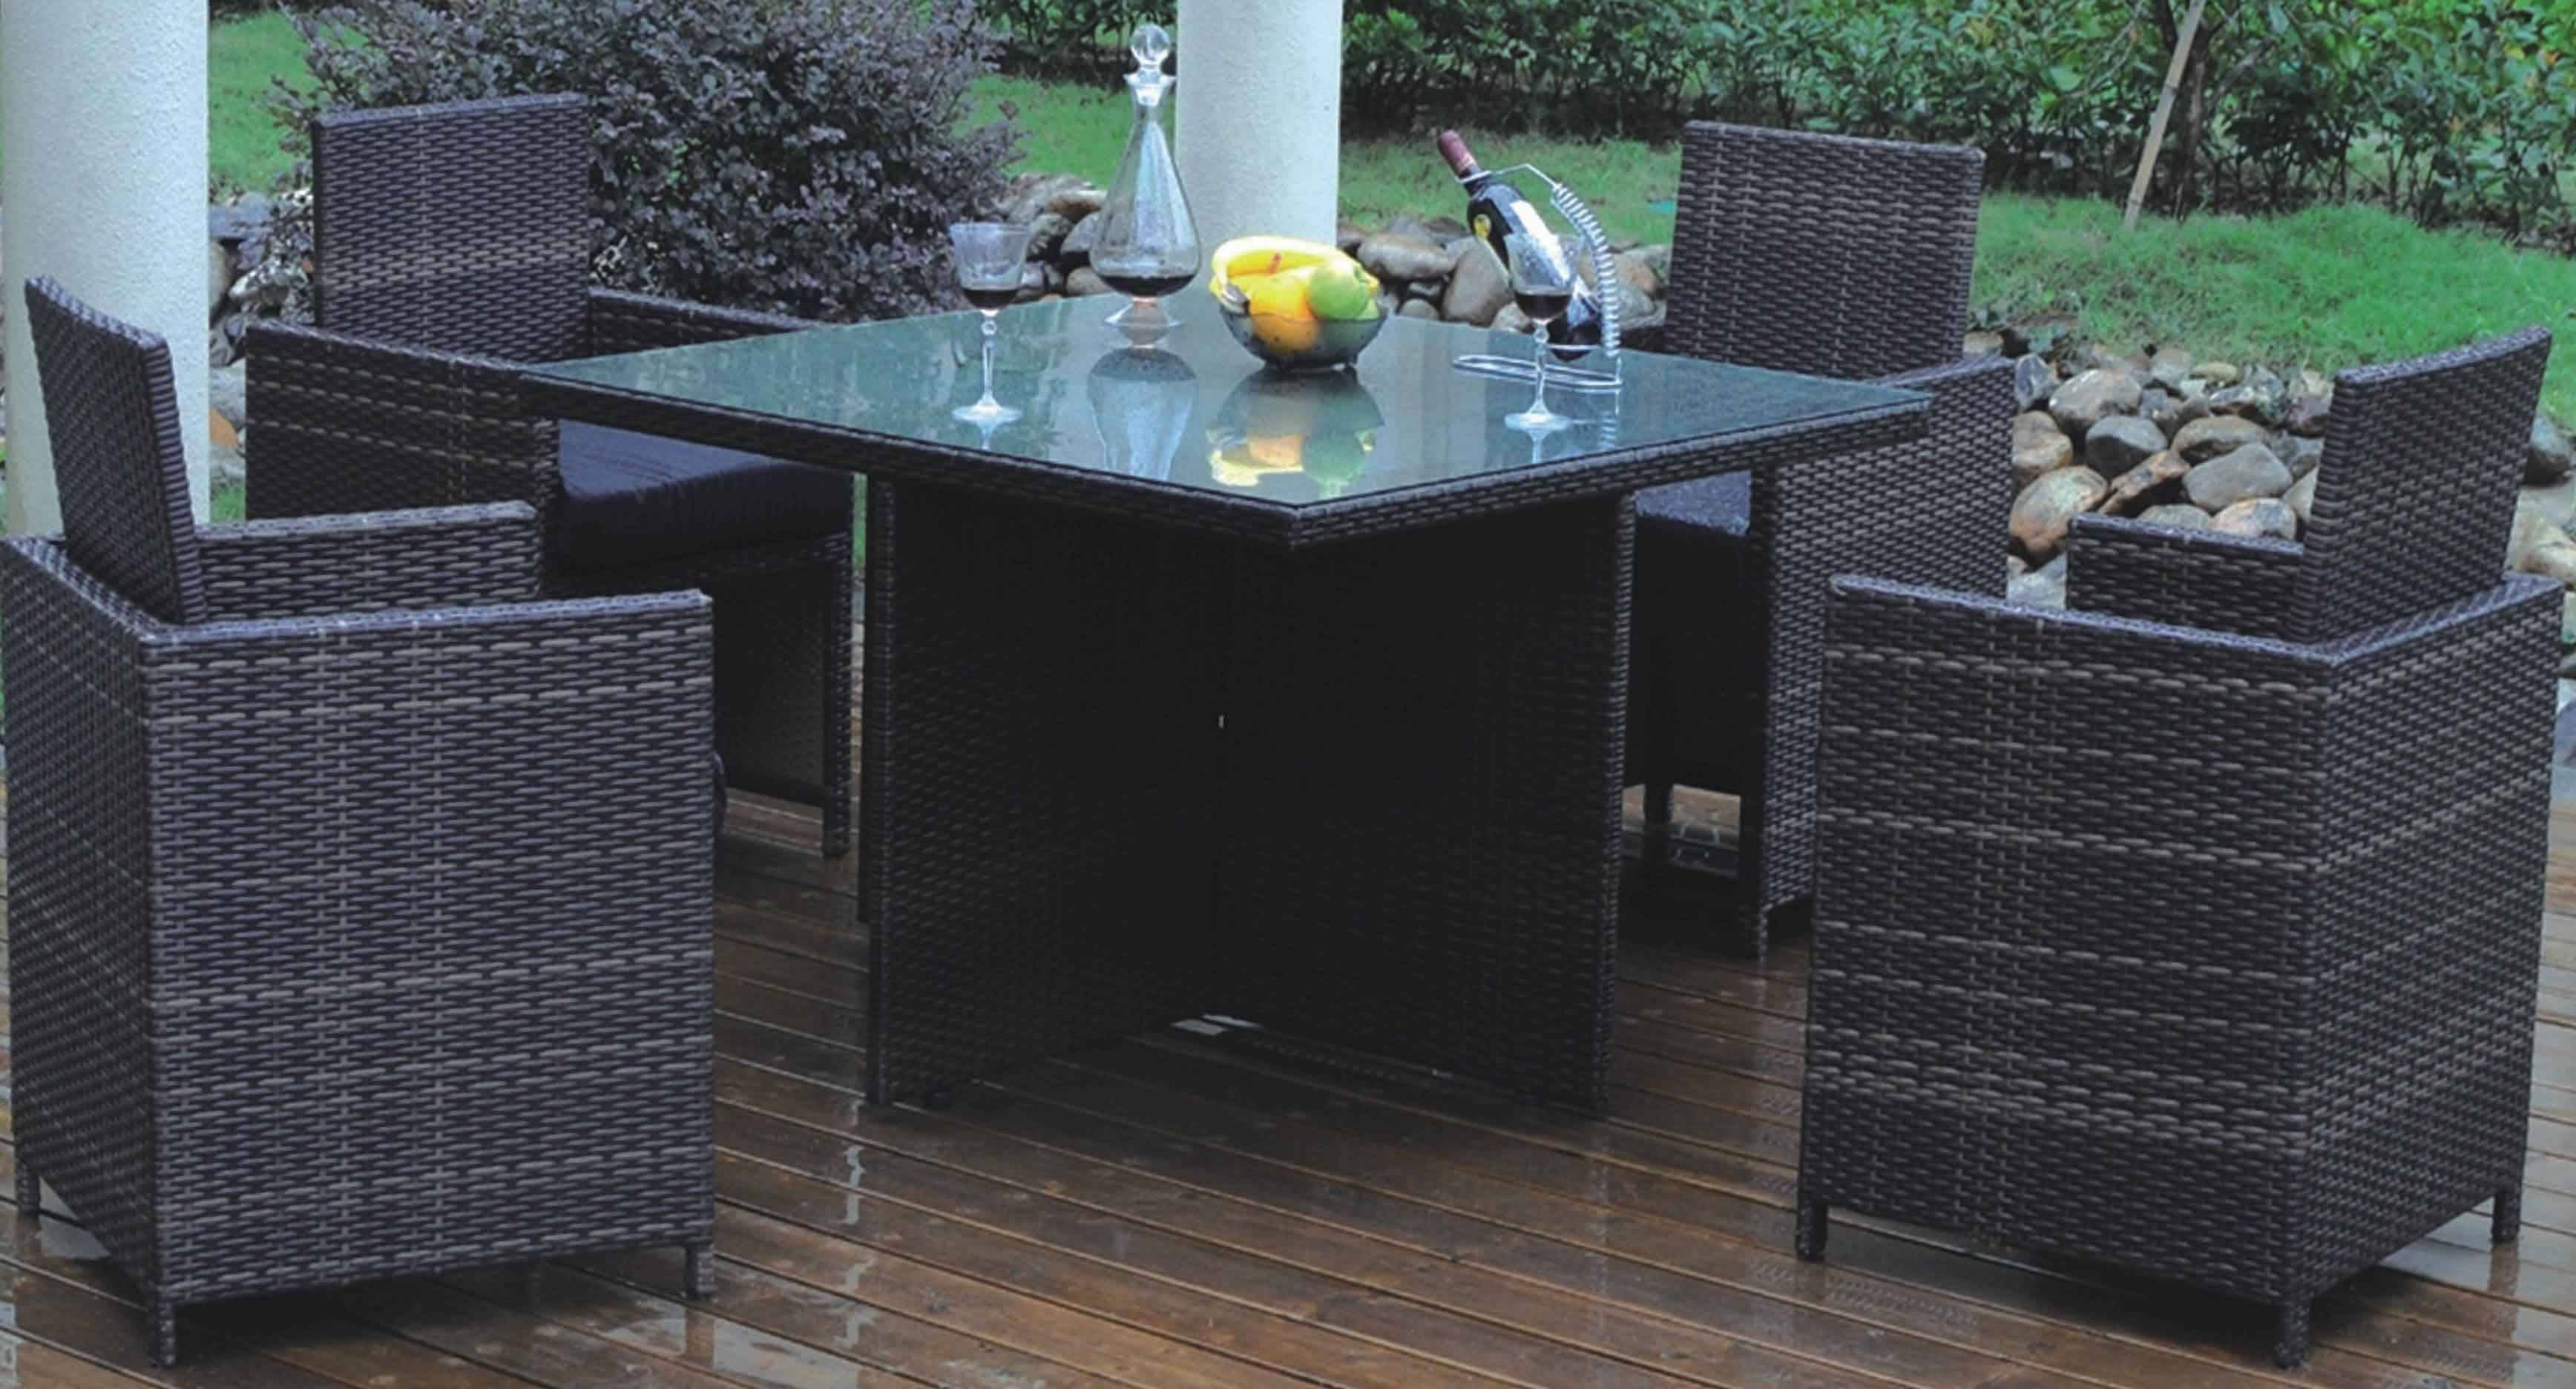 Outdoor rattan dining set with all-aluminum frame construction